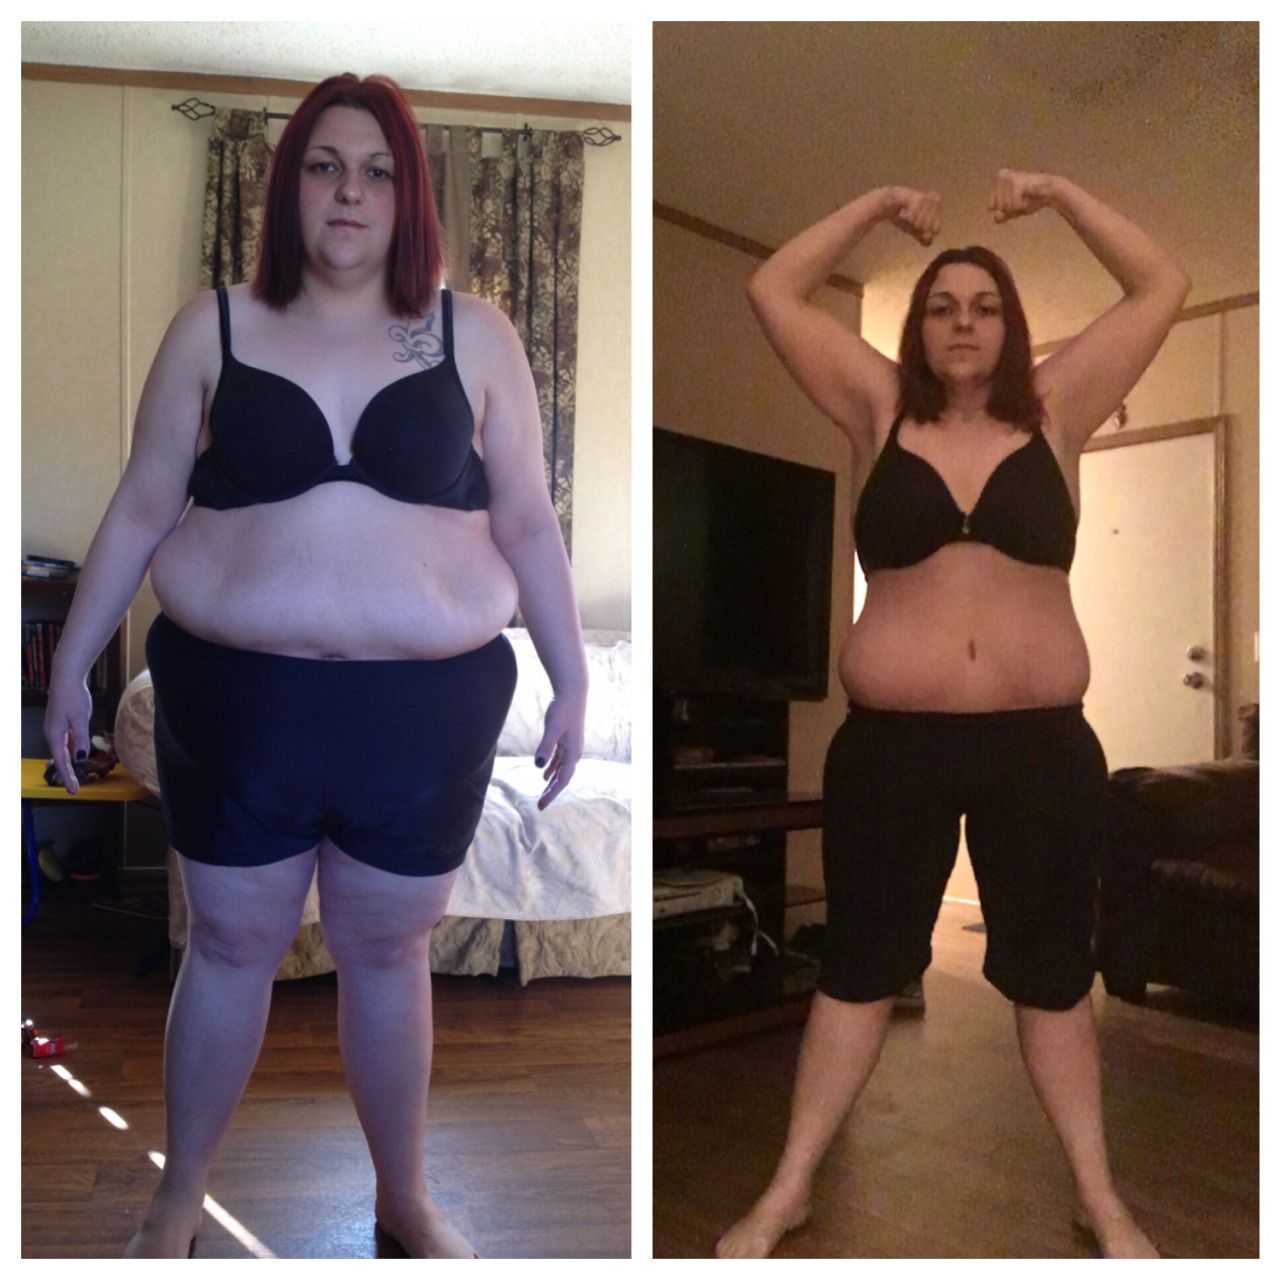 weight loss before and after pics tumblr